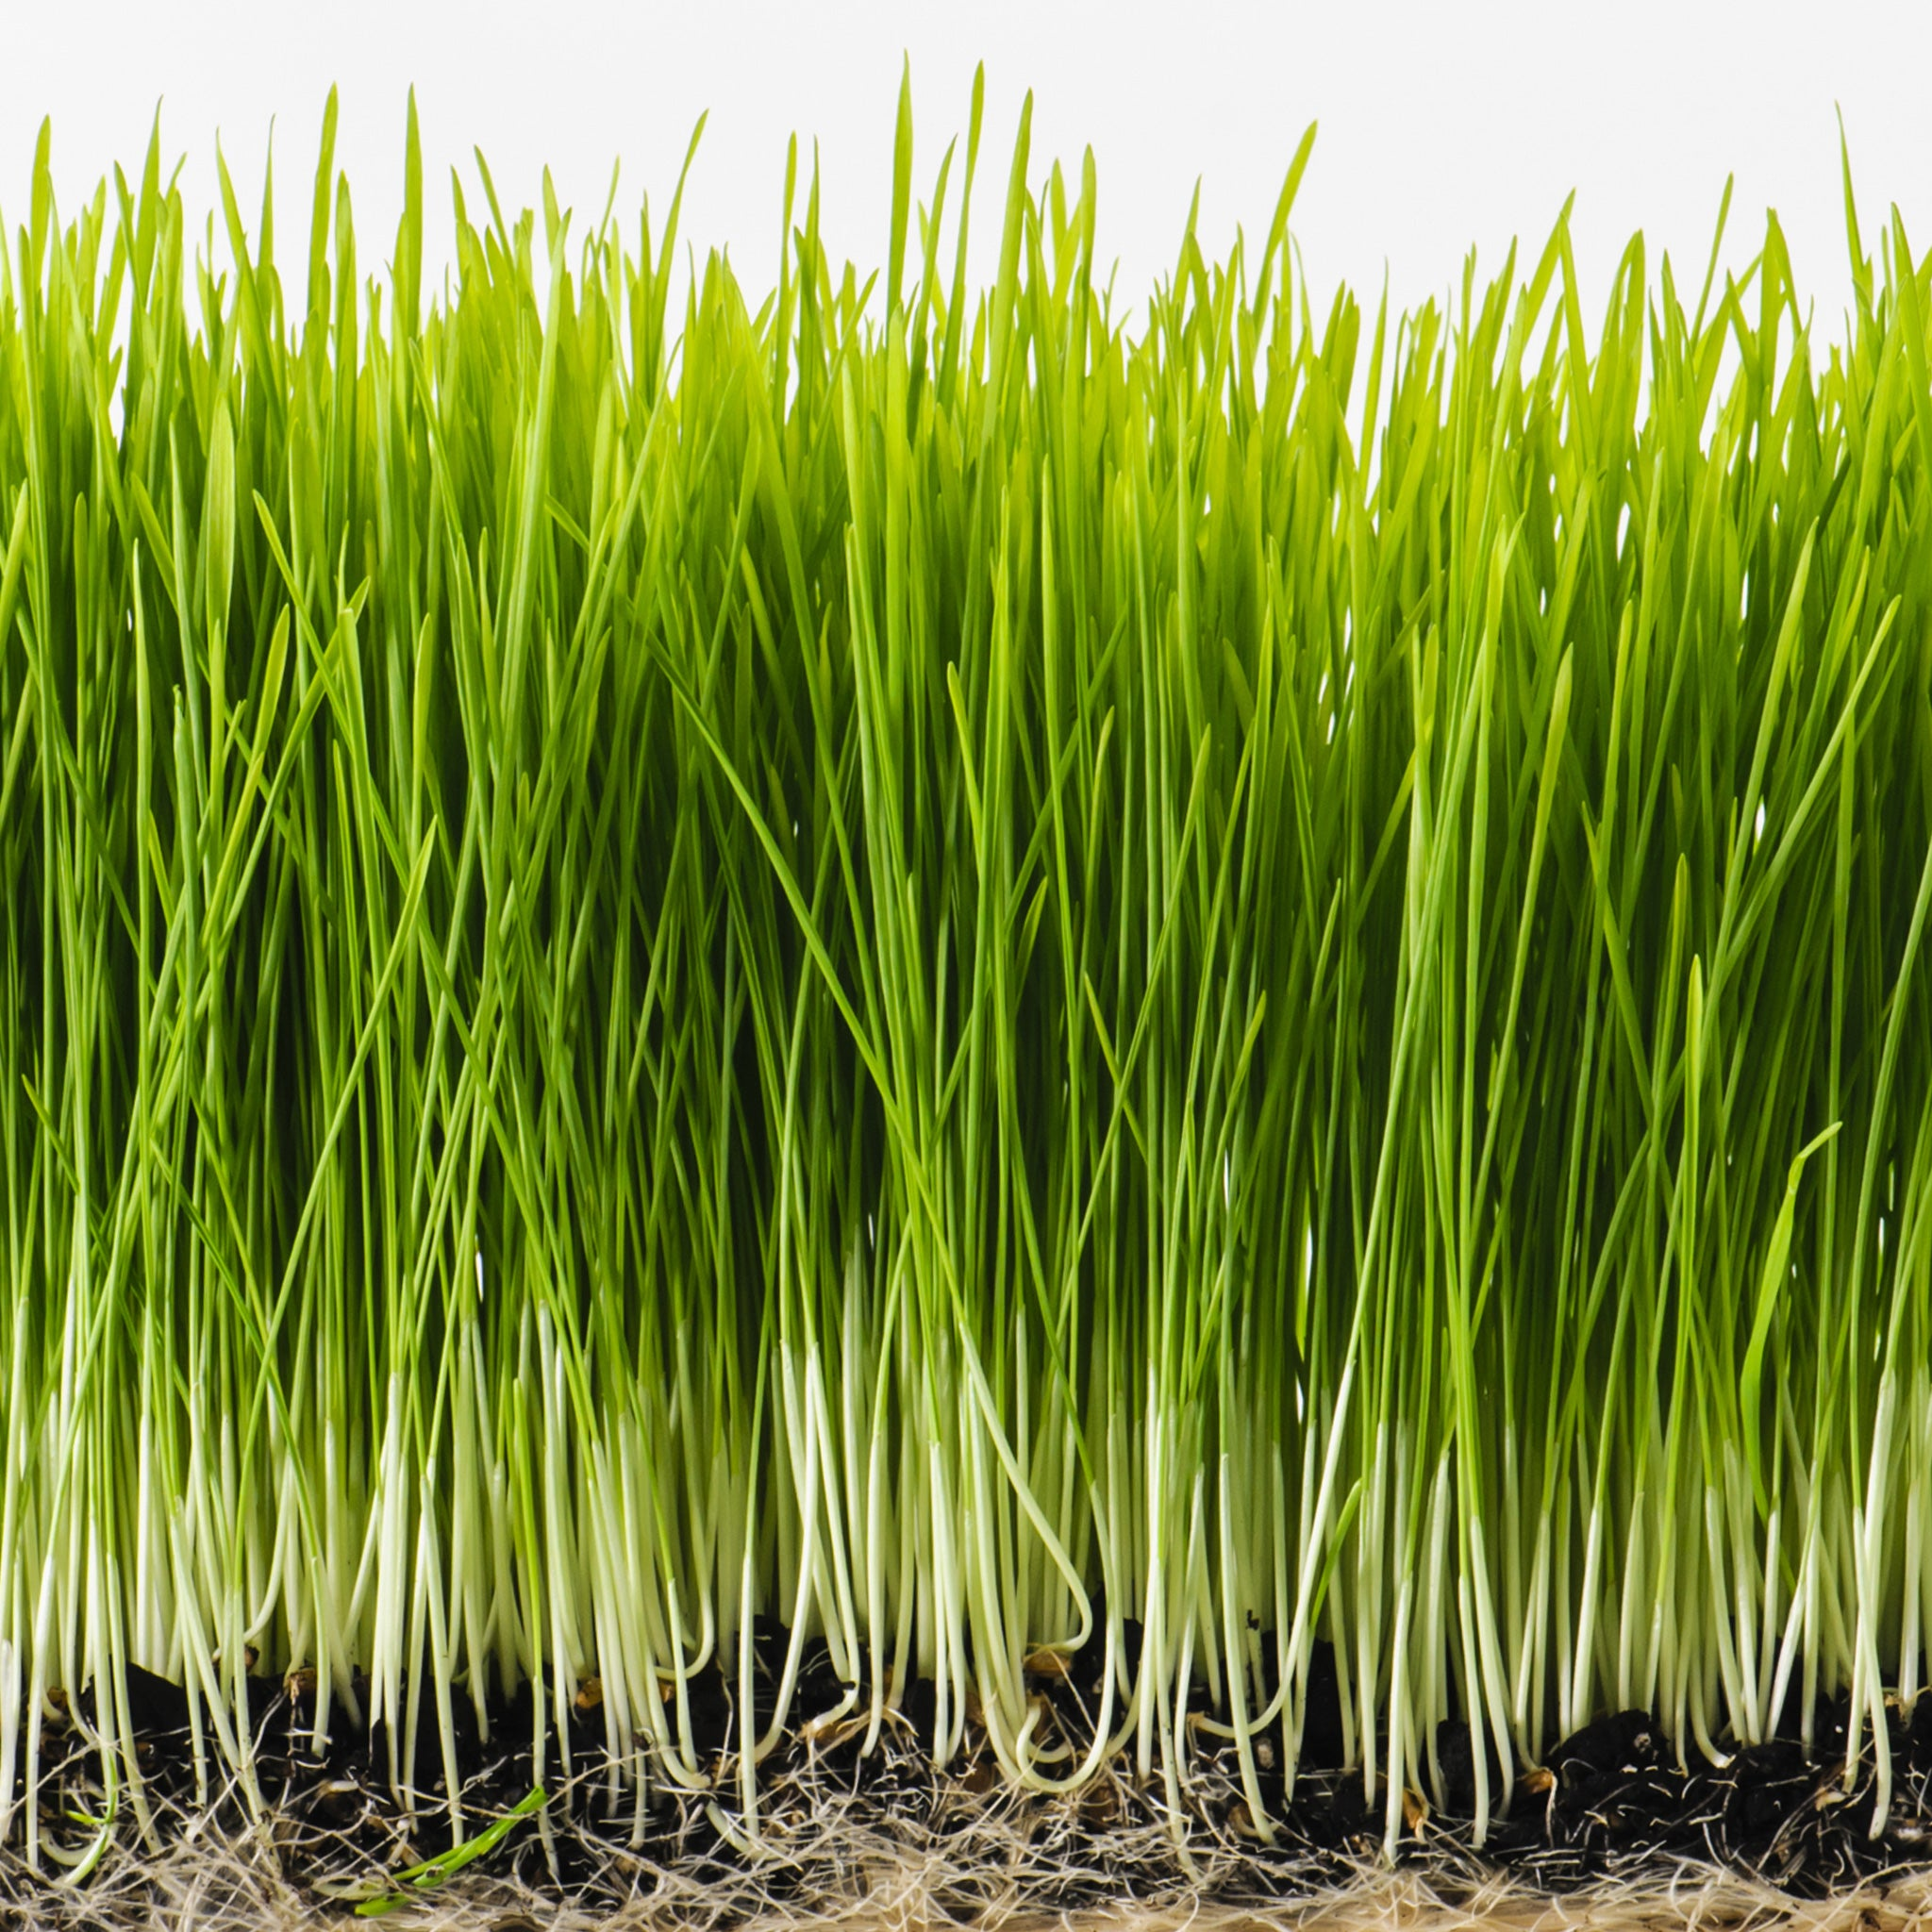 Sproutman's Organic Wheatgrass Sprouting Seeds (5 Lbs) - Tribest